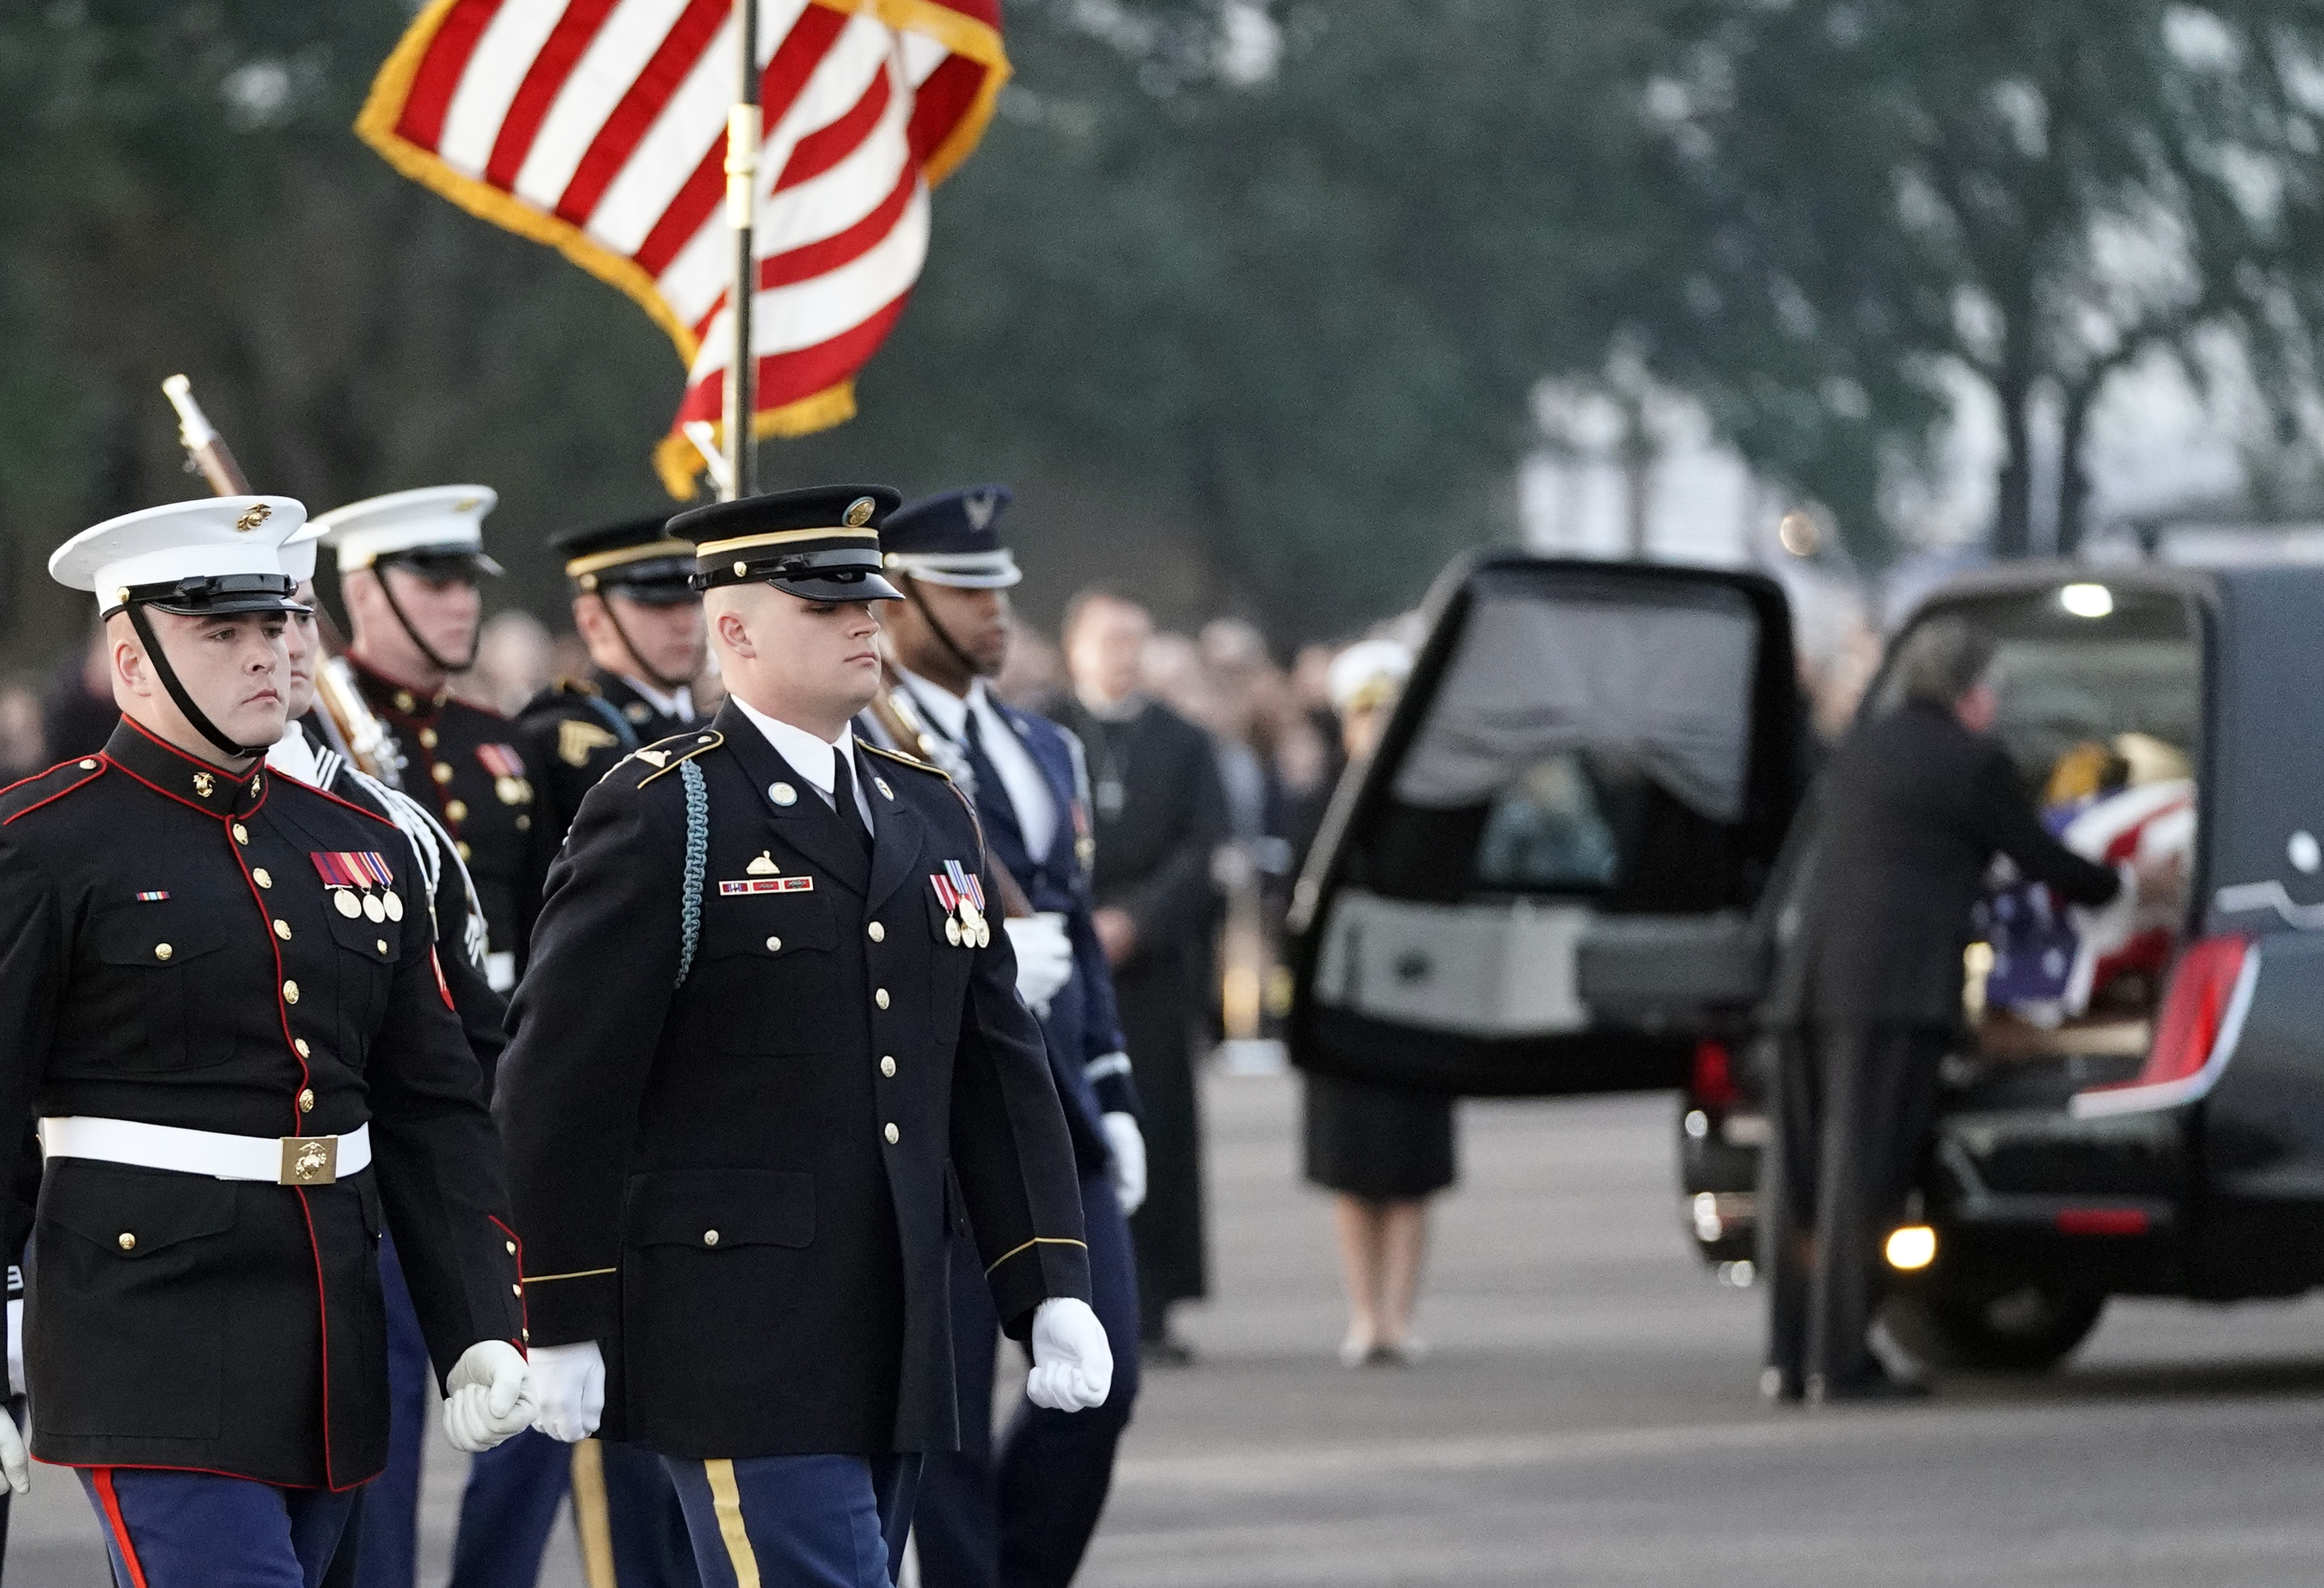 The flag-draped casket of former President George H.W. Bush is secured in a hearse after being carried by a joint services military honor guard Wednesday, Dec. 5, 2018, at Ellington Field in Houston. (AP Photo/David J. Phillip, Pool)